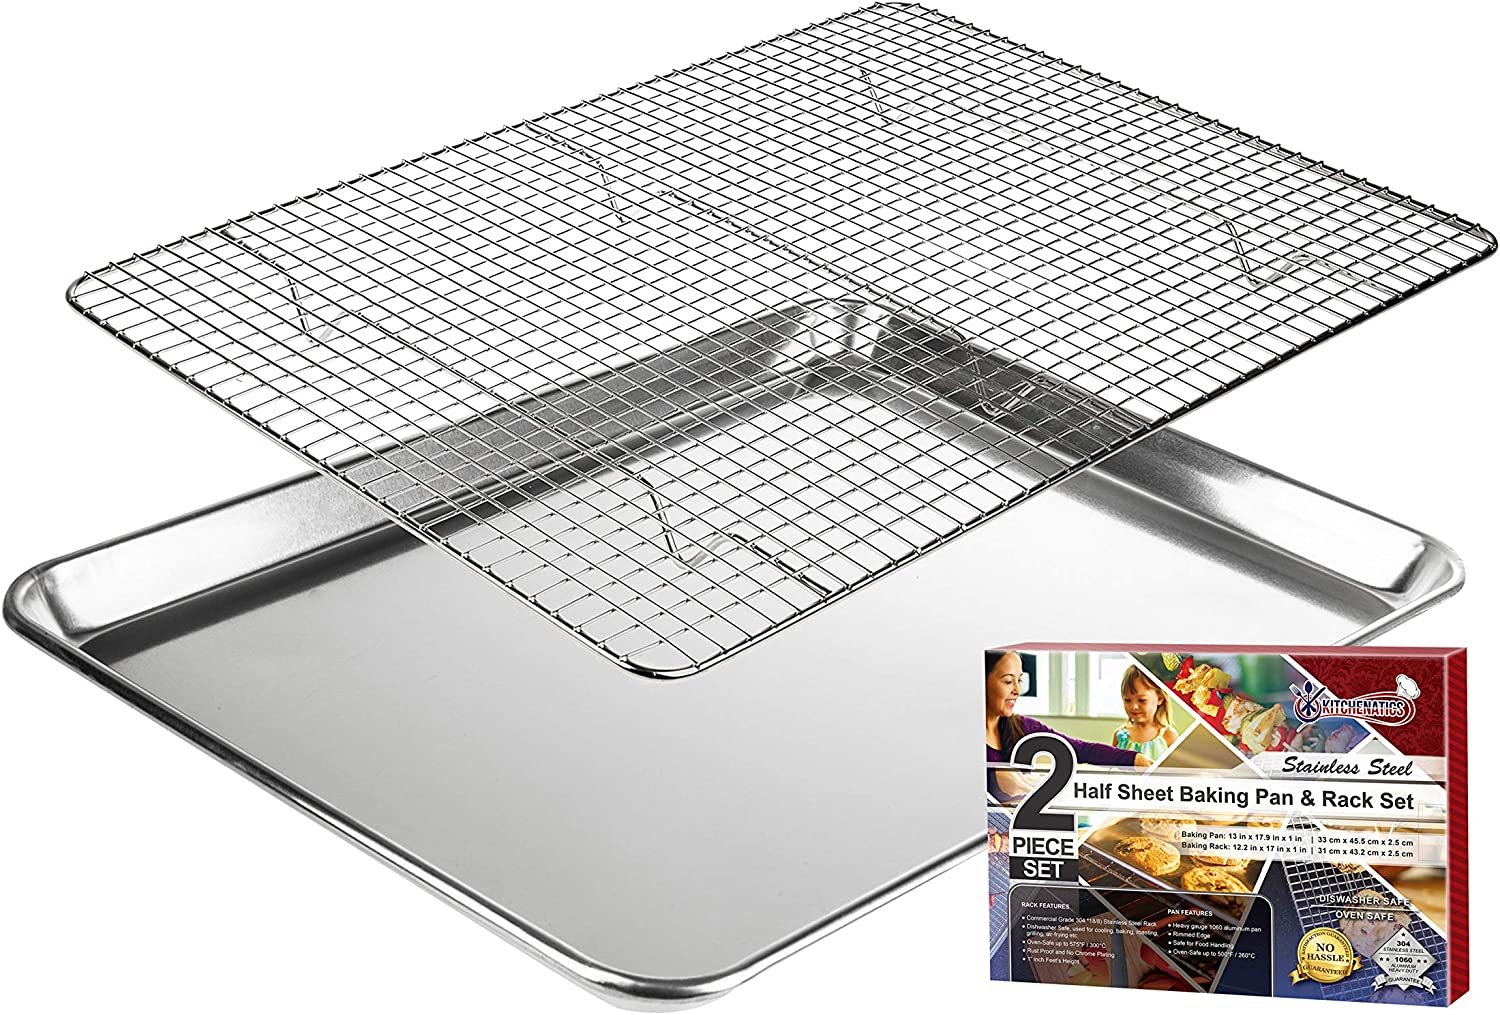 "KITCHENATICS Aluminum Baking Pan with 304 Stainless Steel Cooling Rack, Half Sheet Cookie Tray Pan with Rack for Cooking, Roasting, Grilling, BBQ - 13.1 X 17.9"" - Heavy Duty, Commercial Quality"